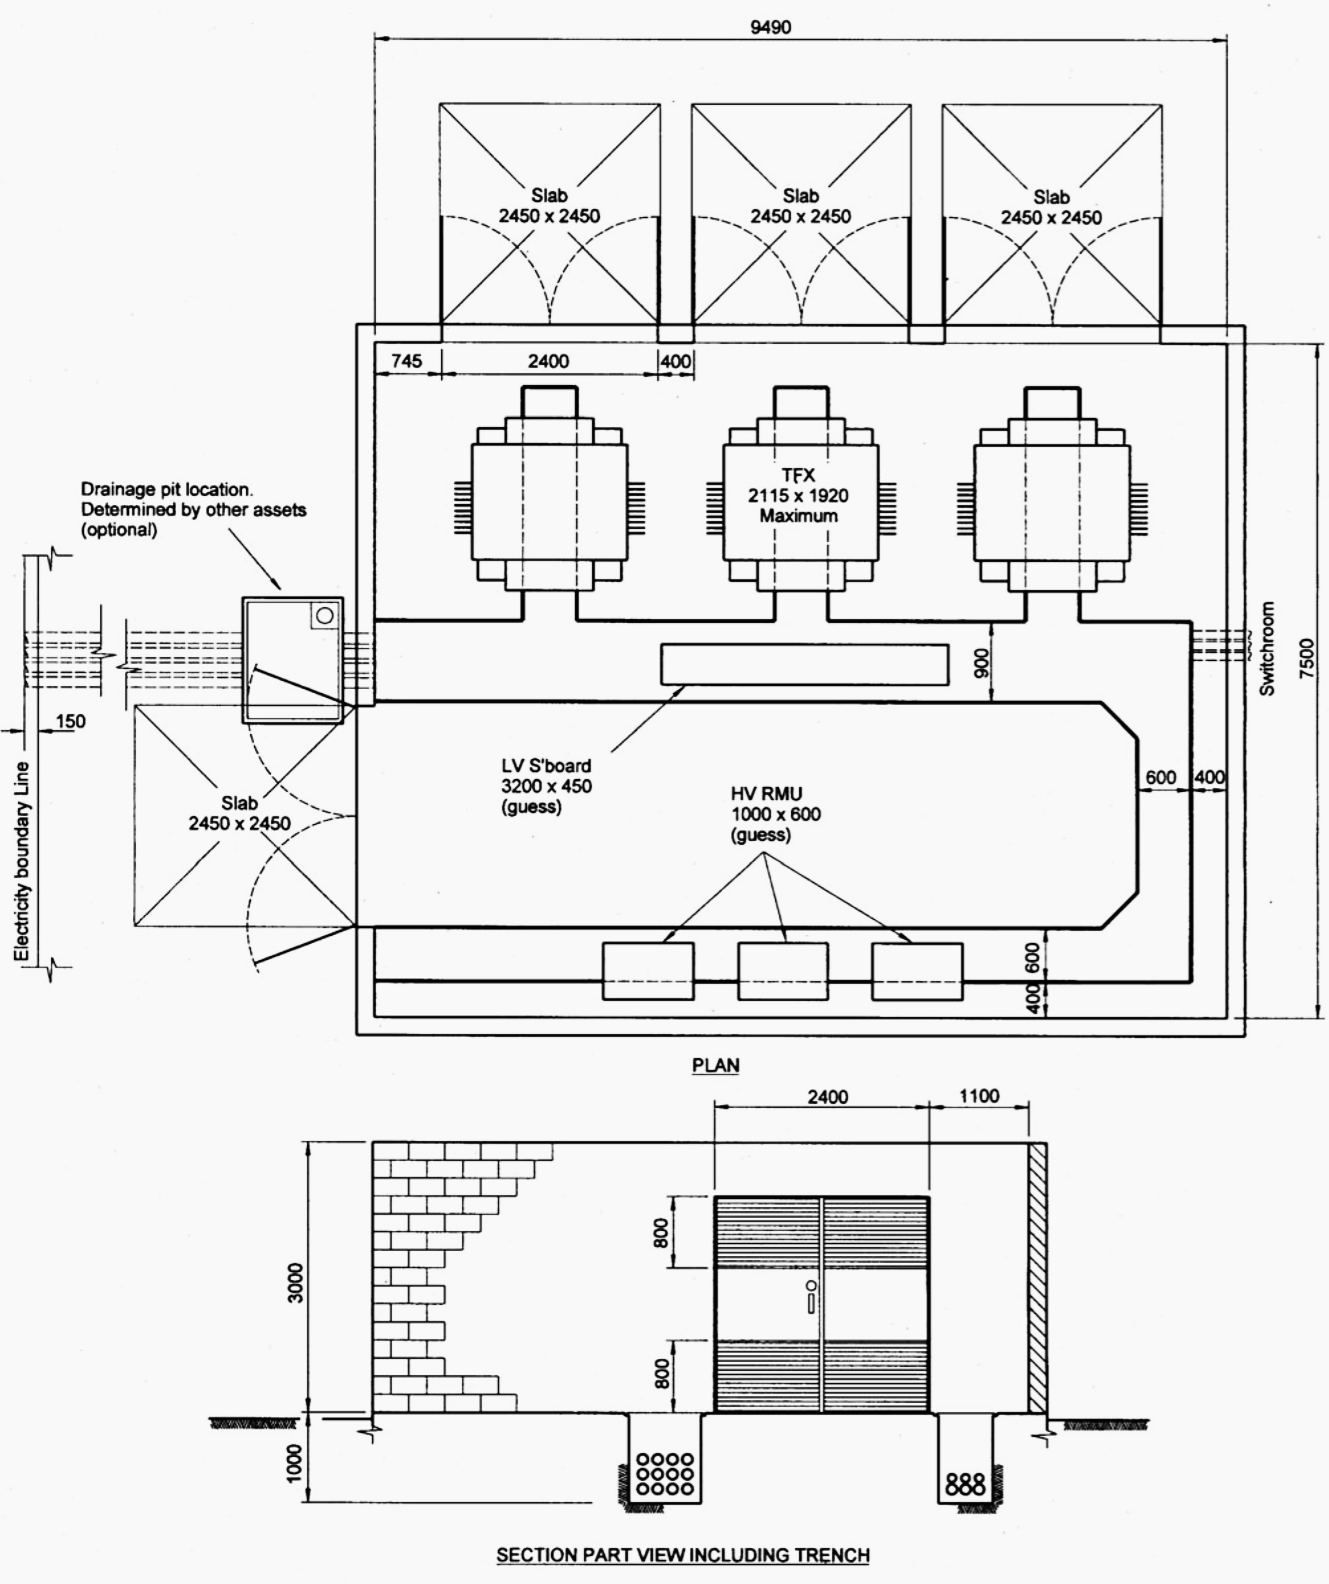 Indoor Distribution Substation Layout With 3 Transformers Emf Current Transformer Design Software Electronic Circuits Containment And More Than 1 External Wall